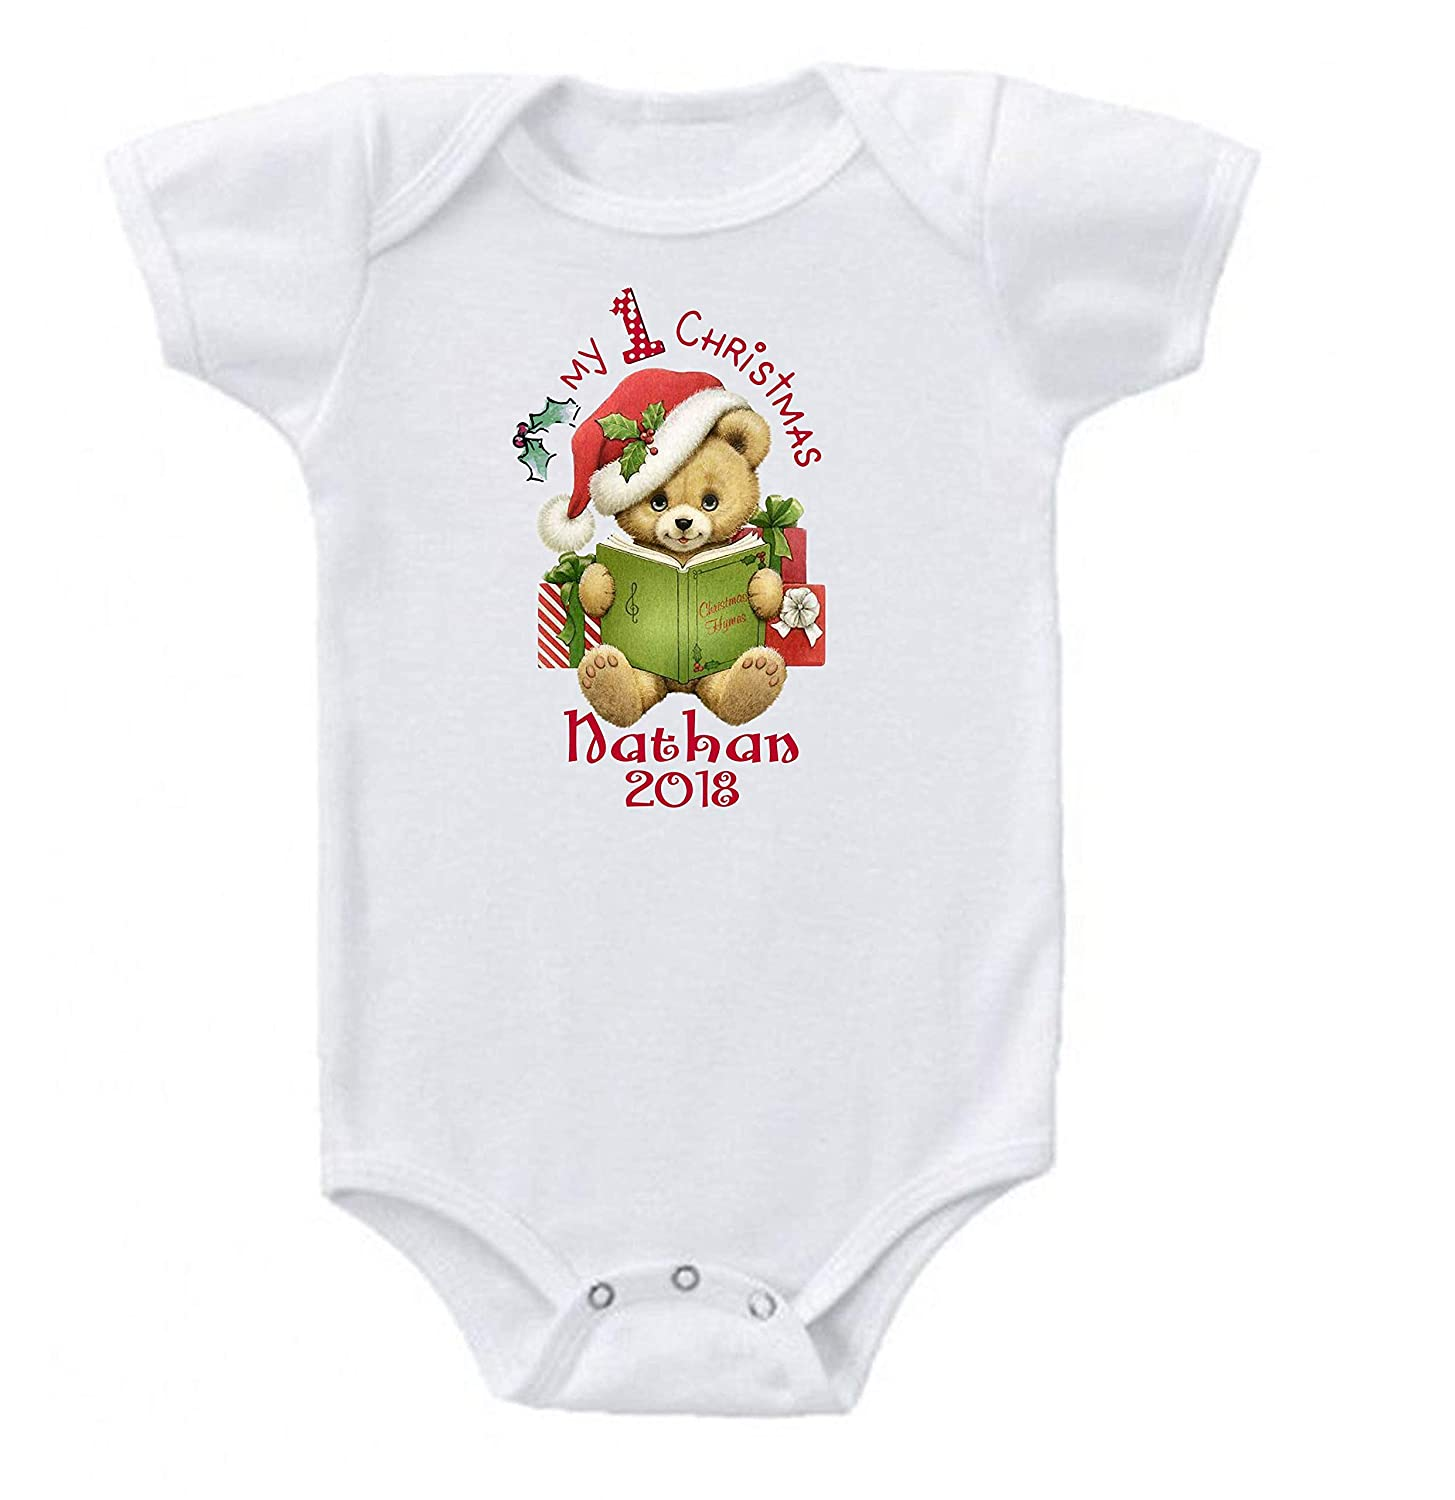 Onesie Babys First Christmas Bear Book Personalized Name Custom Short Sleeve 0 to 3 mos or 3 to 6 months or 6 to 12 months for Boys or Girls